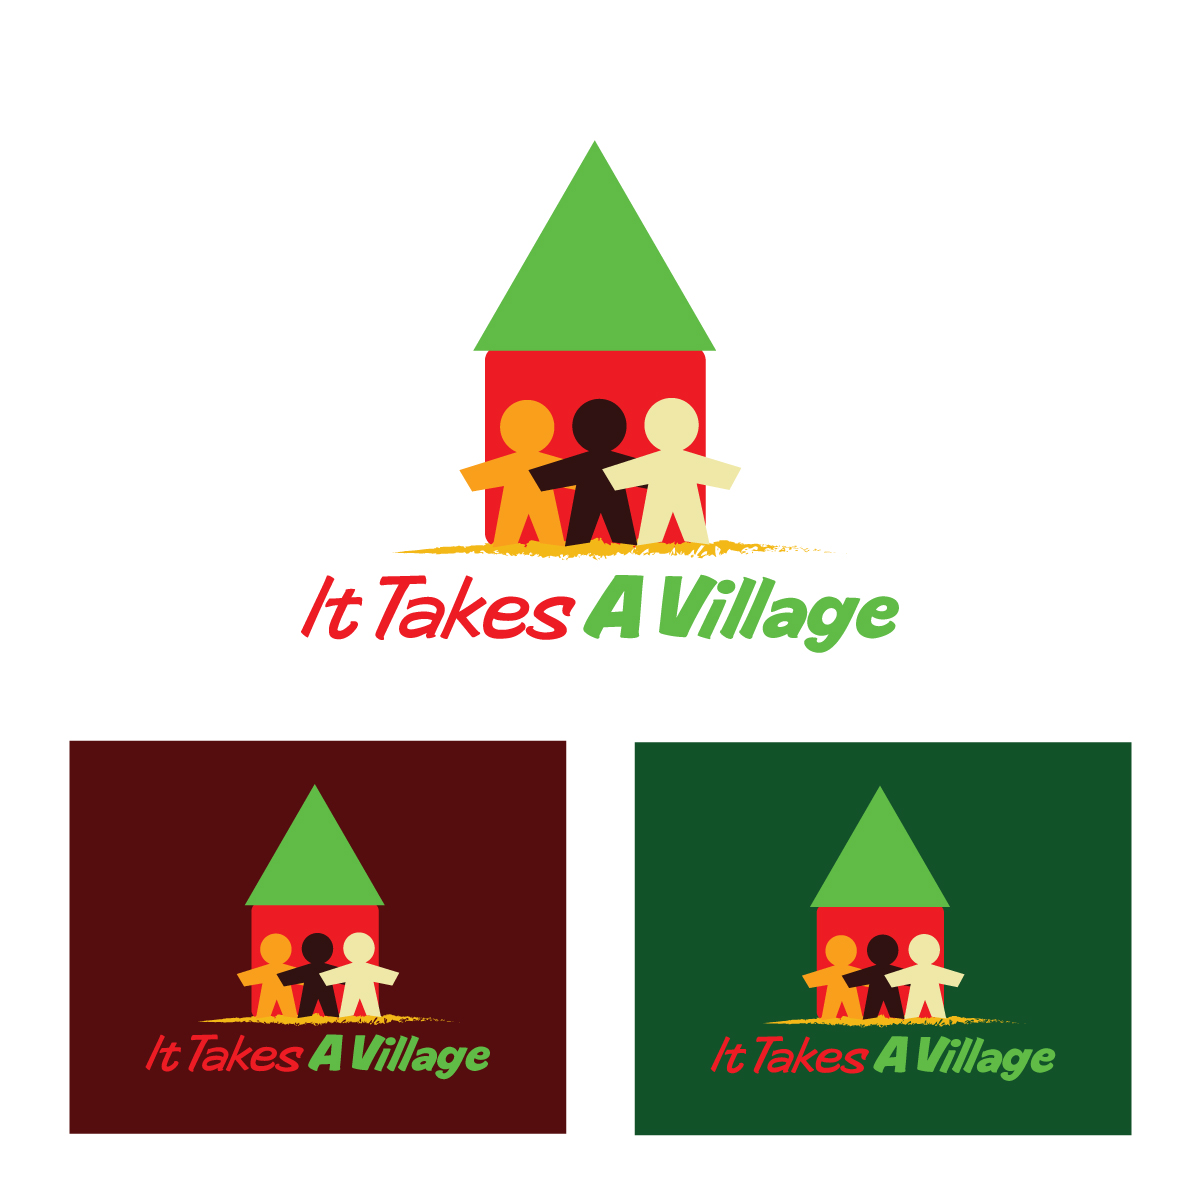 Logo Design by danelav - Entry No. 38 in the Logo Design Contest Captivating Logo Design for It Takes A Village.